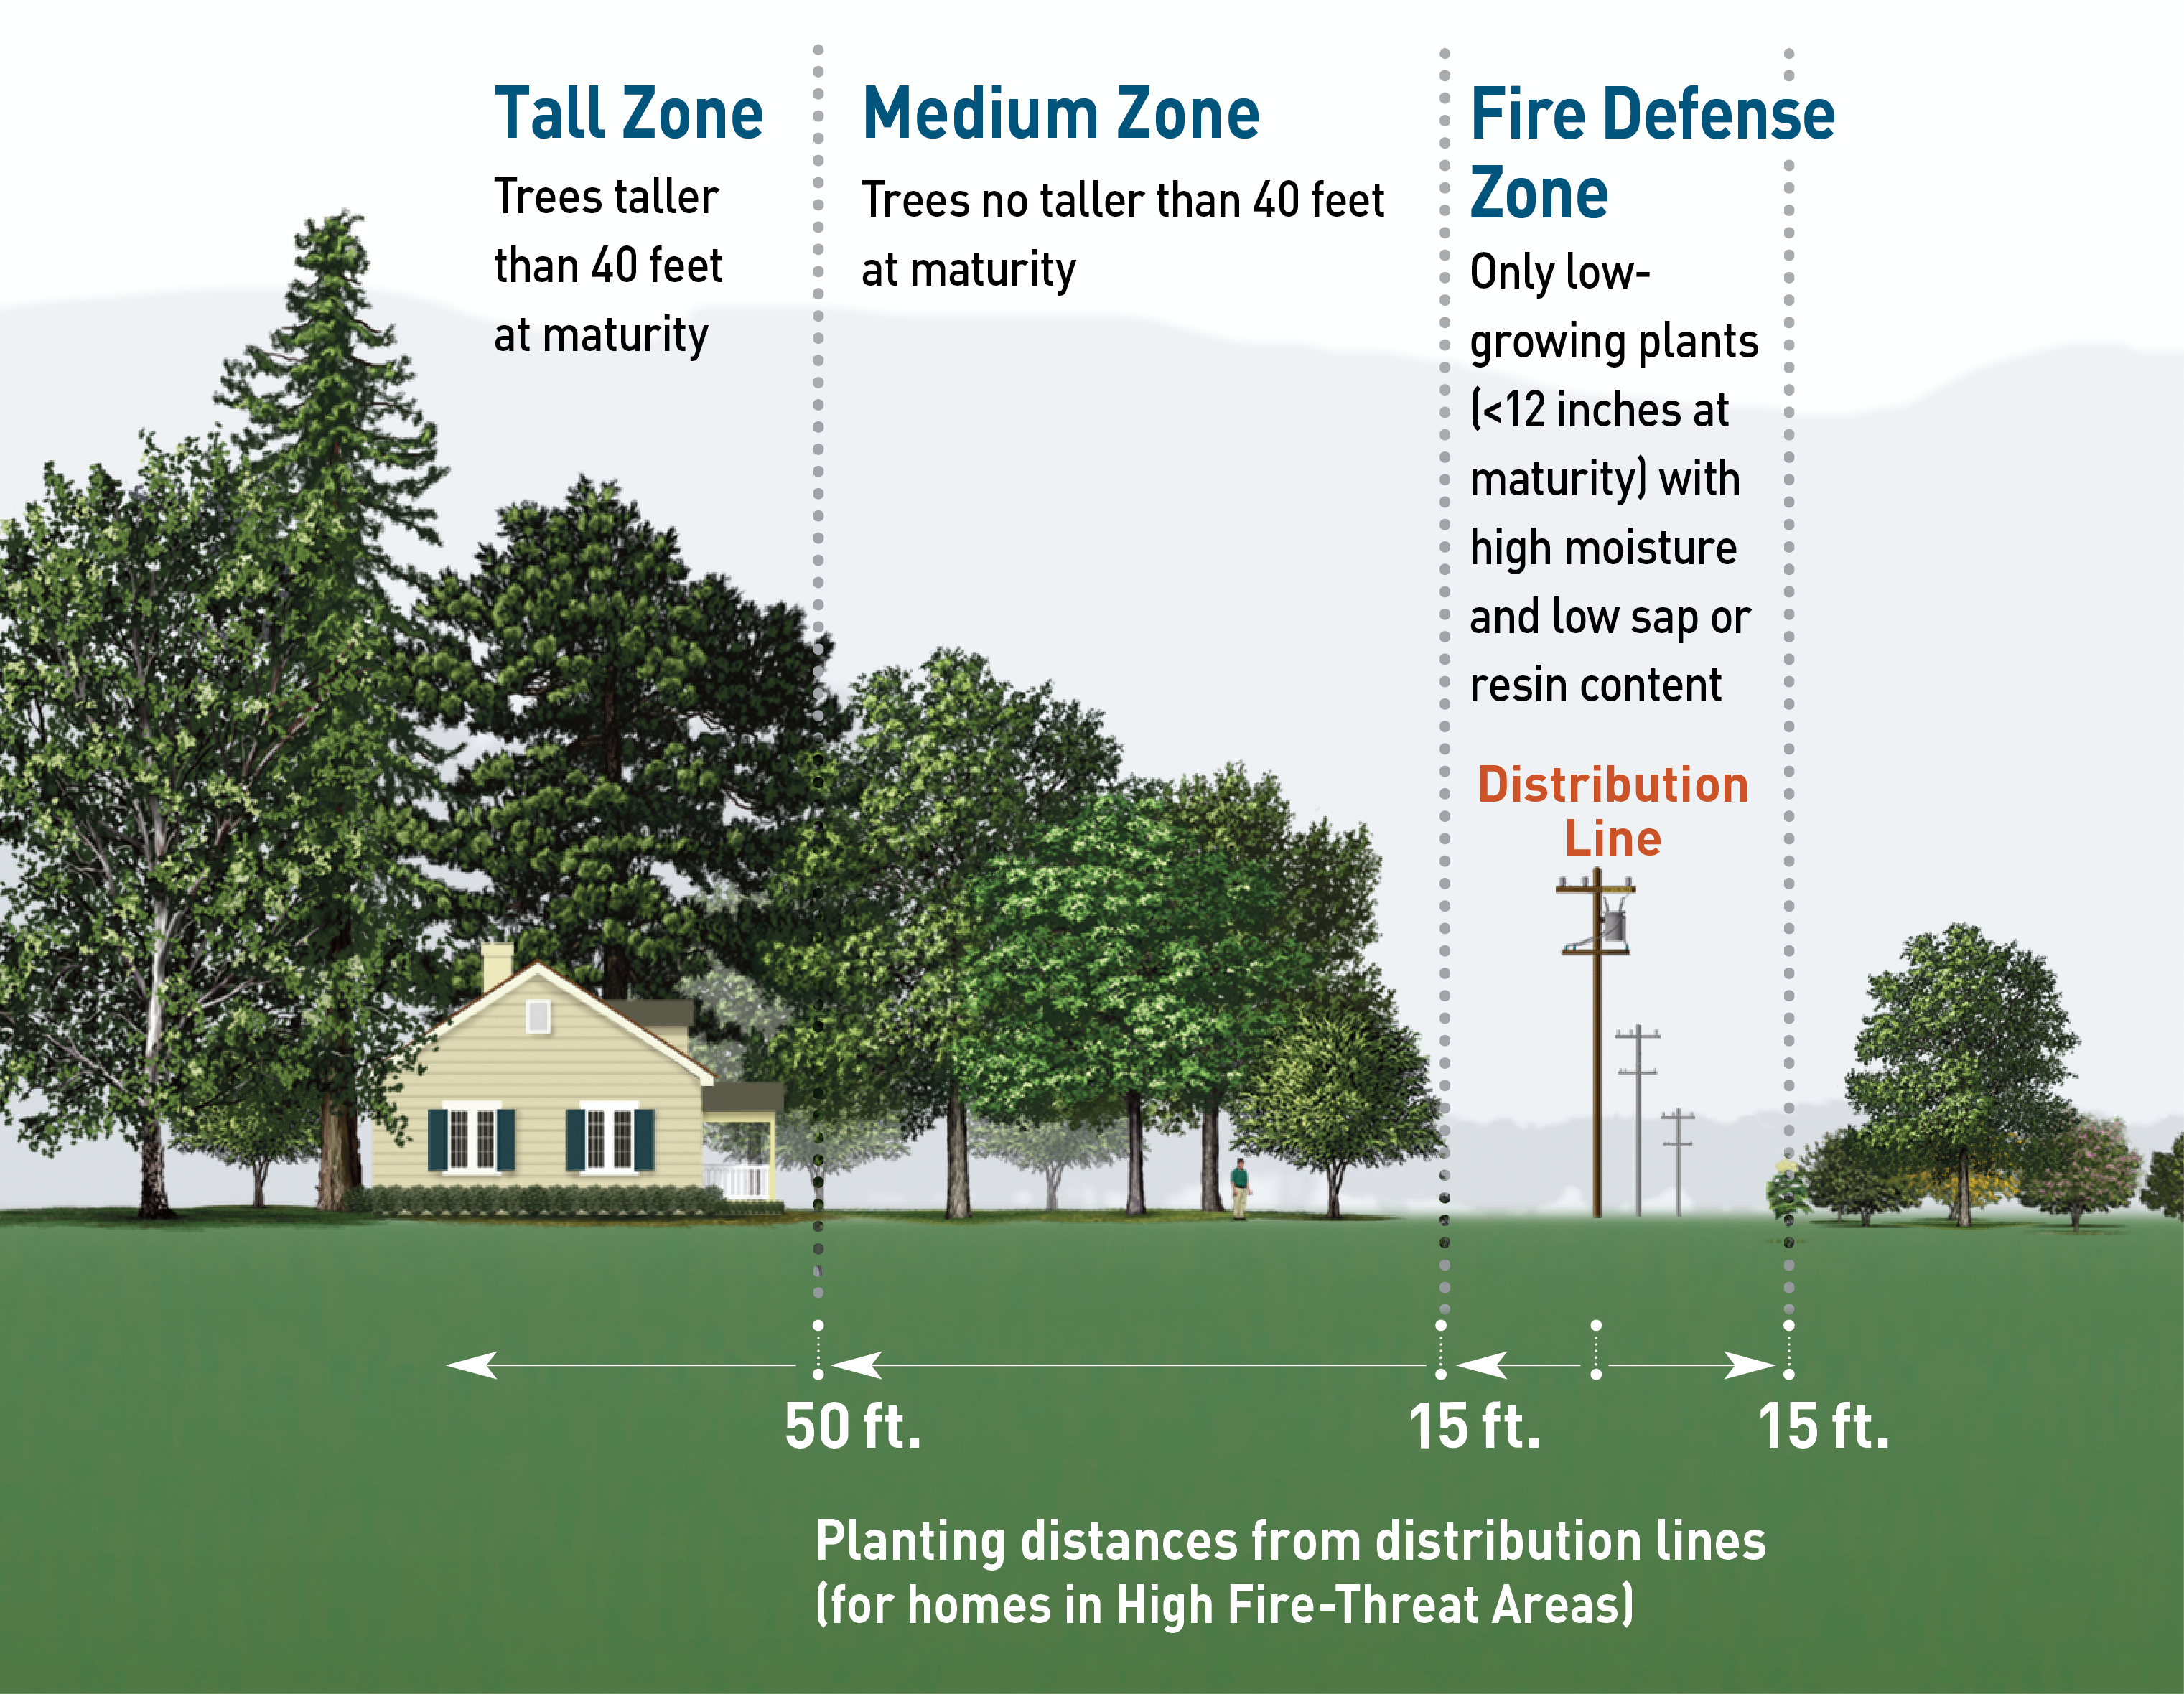 Planting guidelines near distribution lines within High Fire Threat Areas